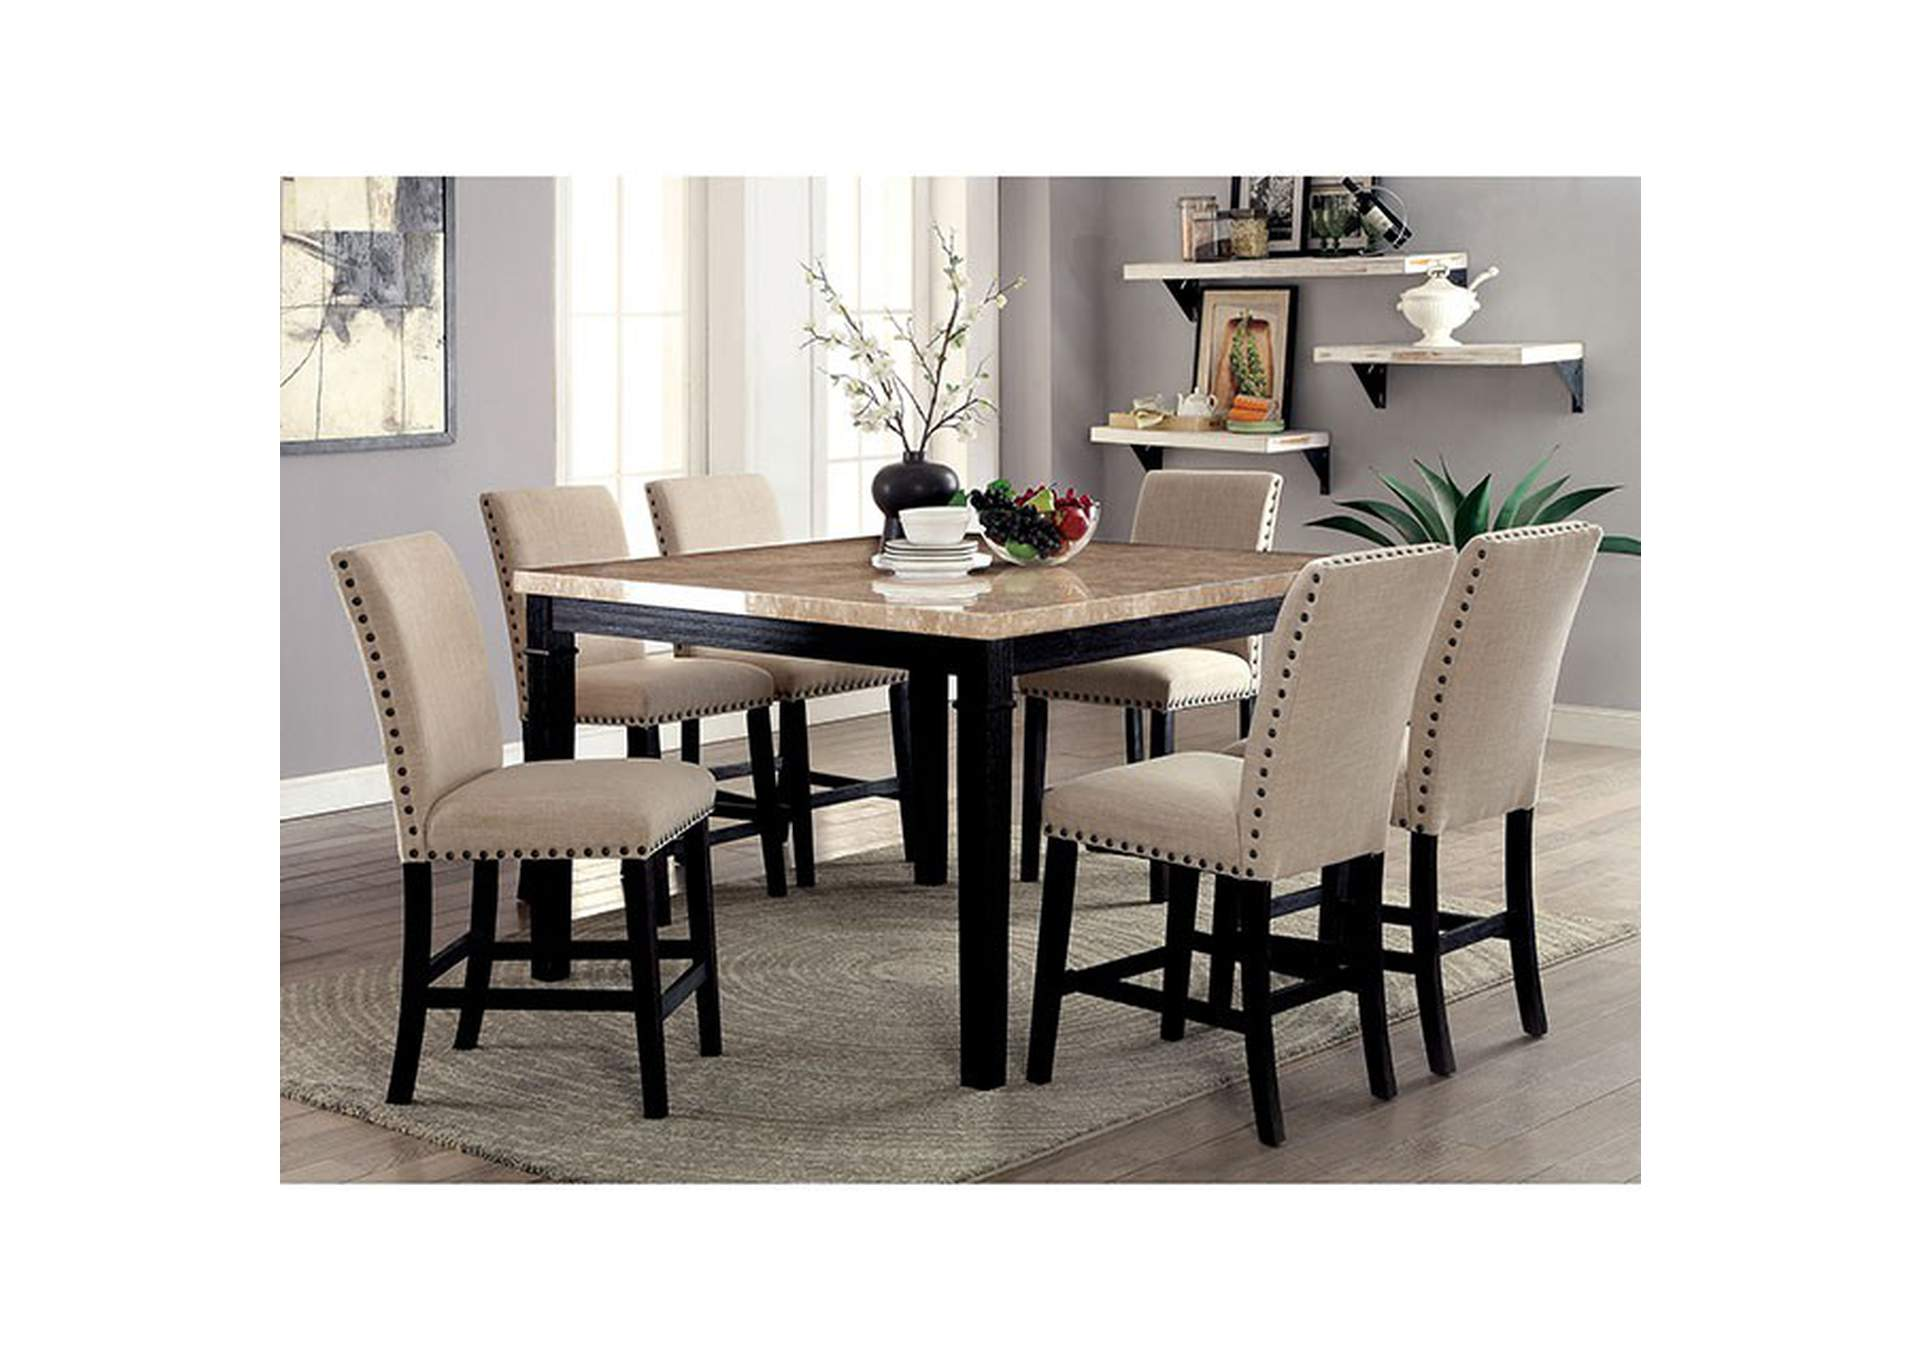 Dodson II Black Counter Table,Furniture of America